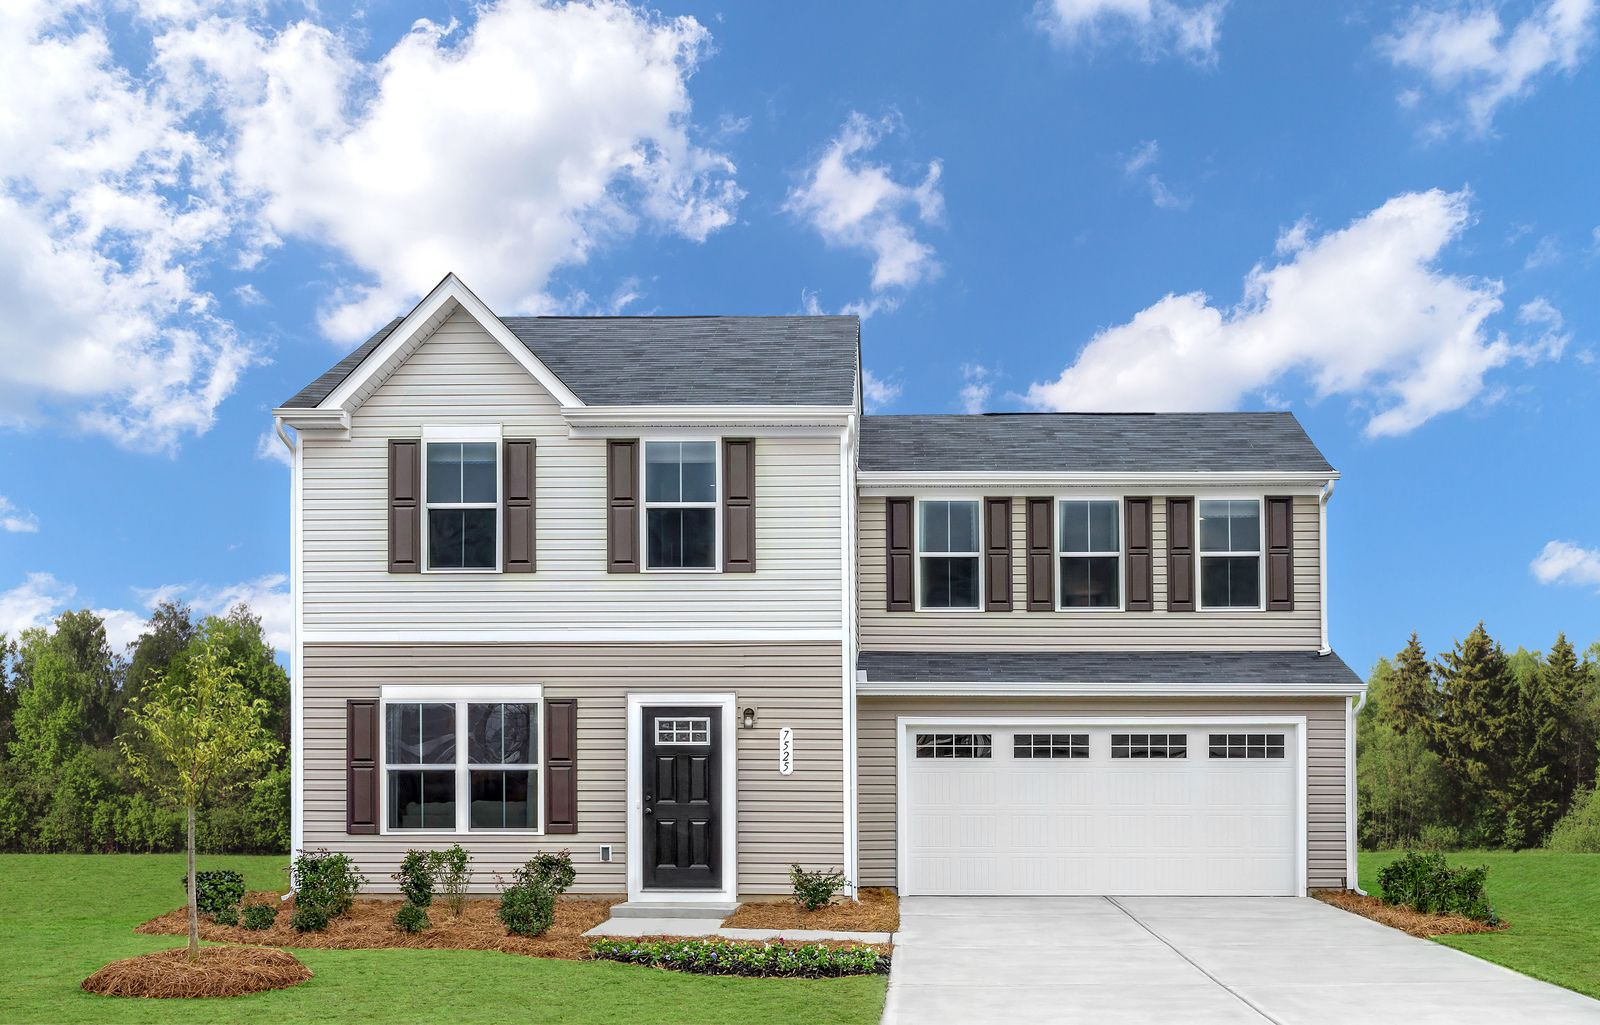 JOIN THE WALNUT RUN VIP LIST TODAY!:Affordable new homes in Groveport Madison schools, 2-car garages, full basements and little to no money down. Minutes to I-270, from low $200s.Click here to join the VIP List!